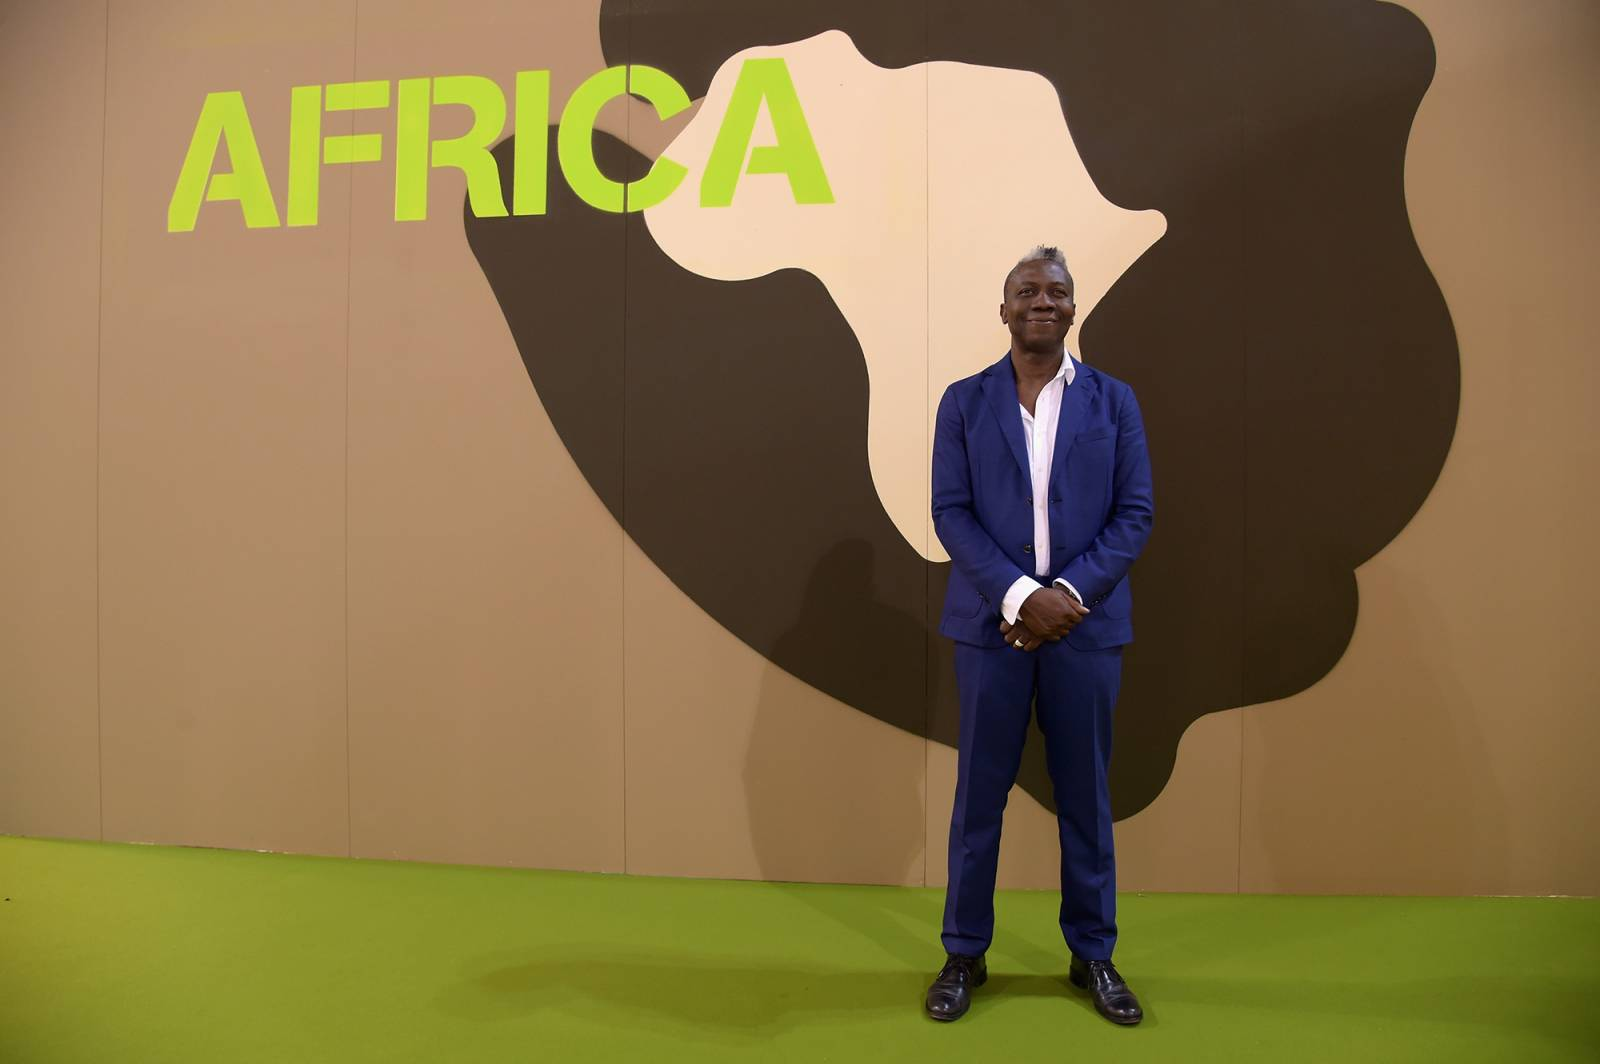 Salone Del Mobile 2018 (Fot. Getty Images)